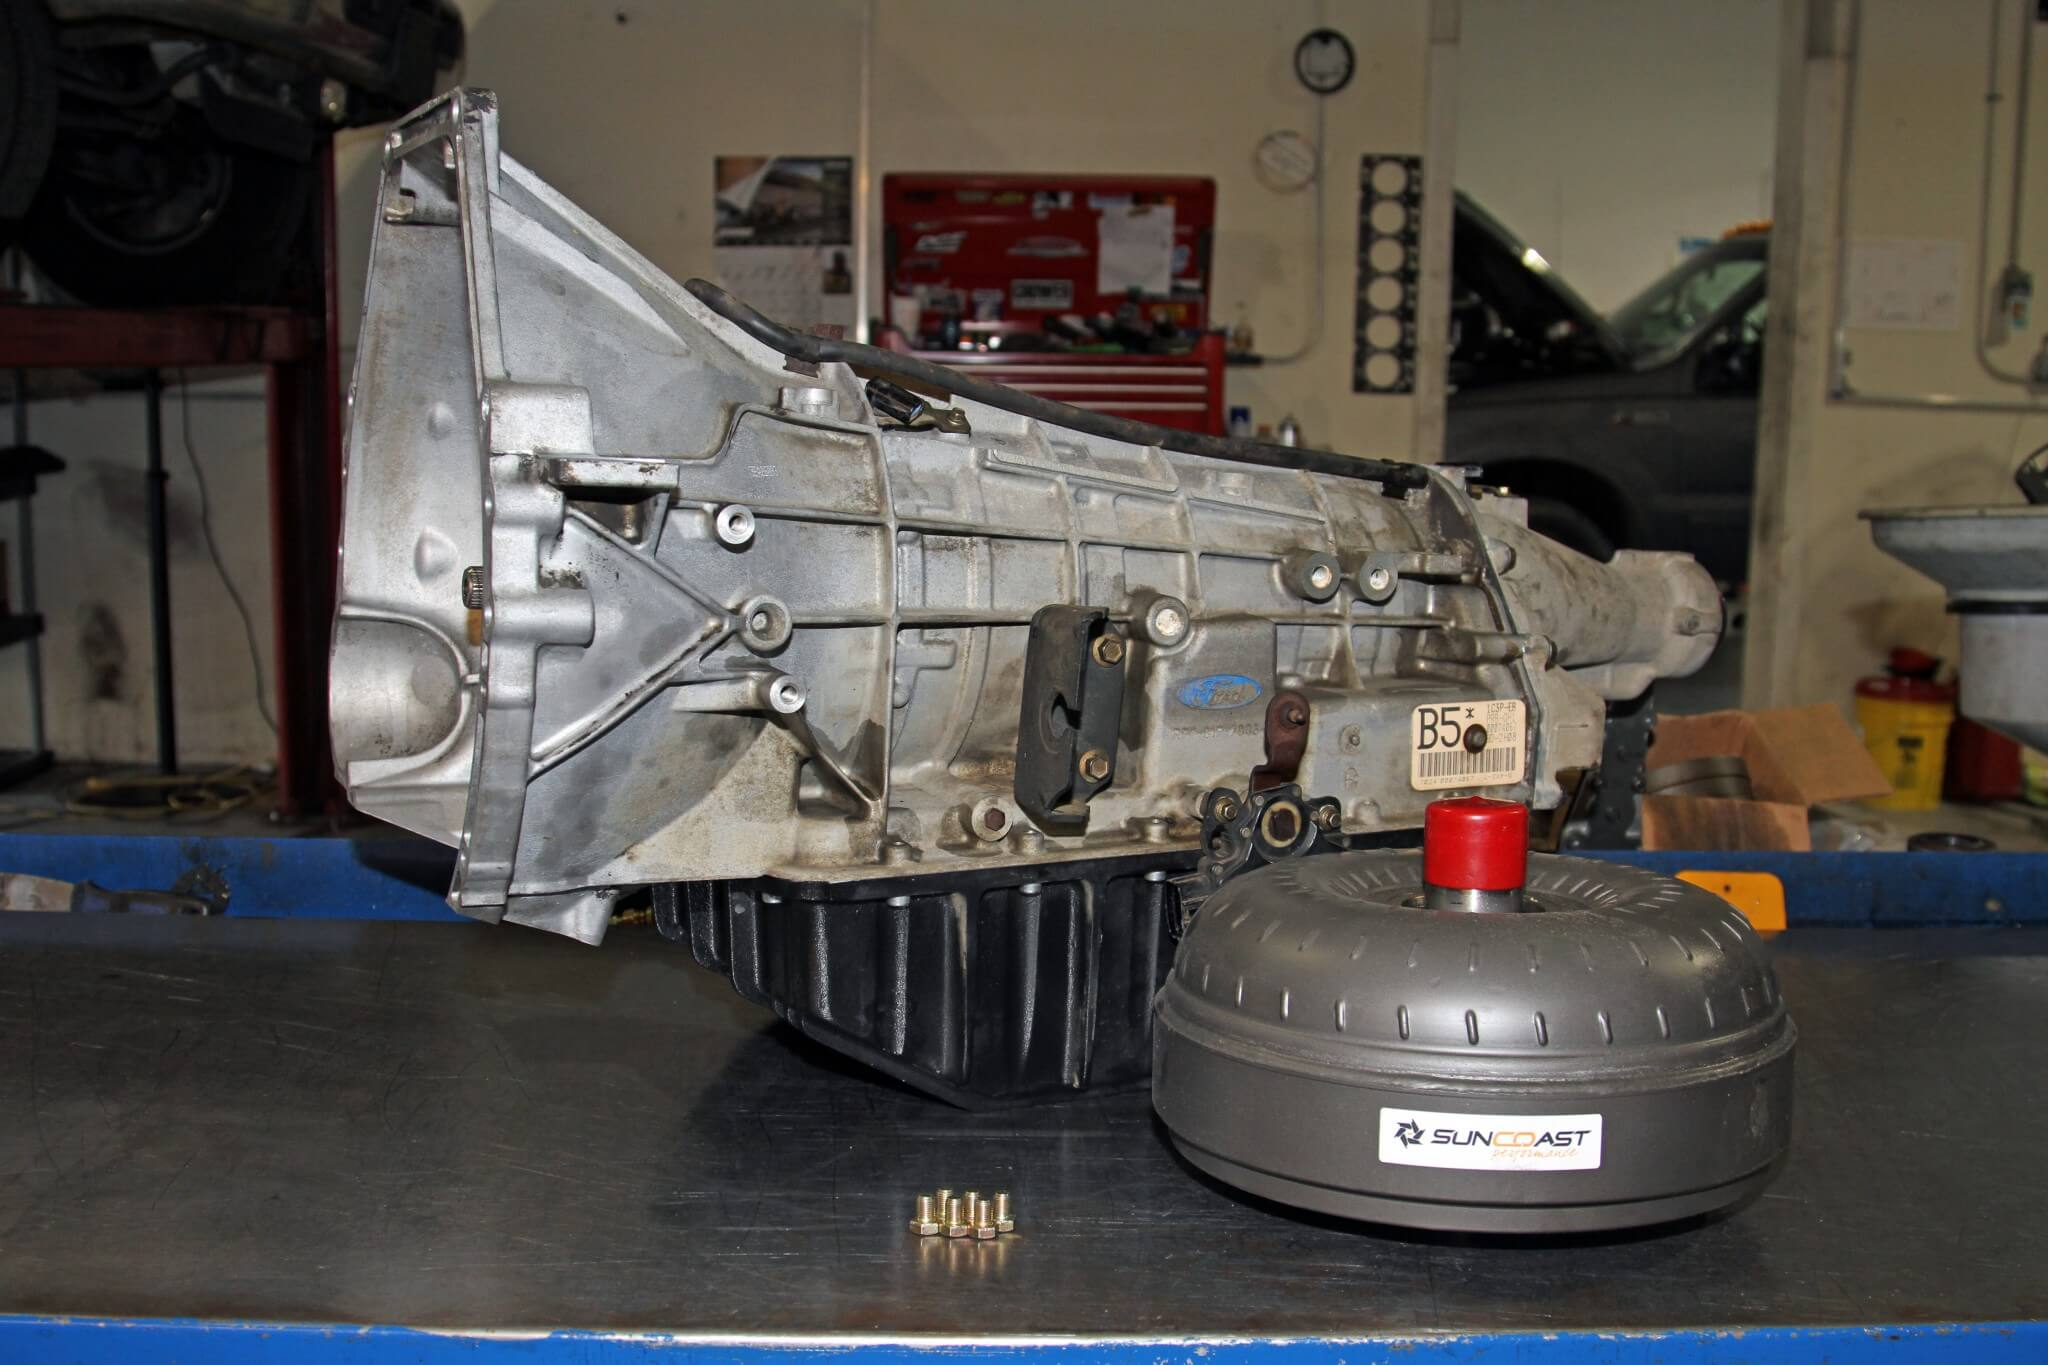 Project work truck 5 rebuilding transmission thanks to a sun coast xtreme rebuild kit billet torque converter and the guys at publicscrutiny Image collections